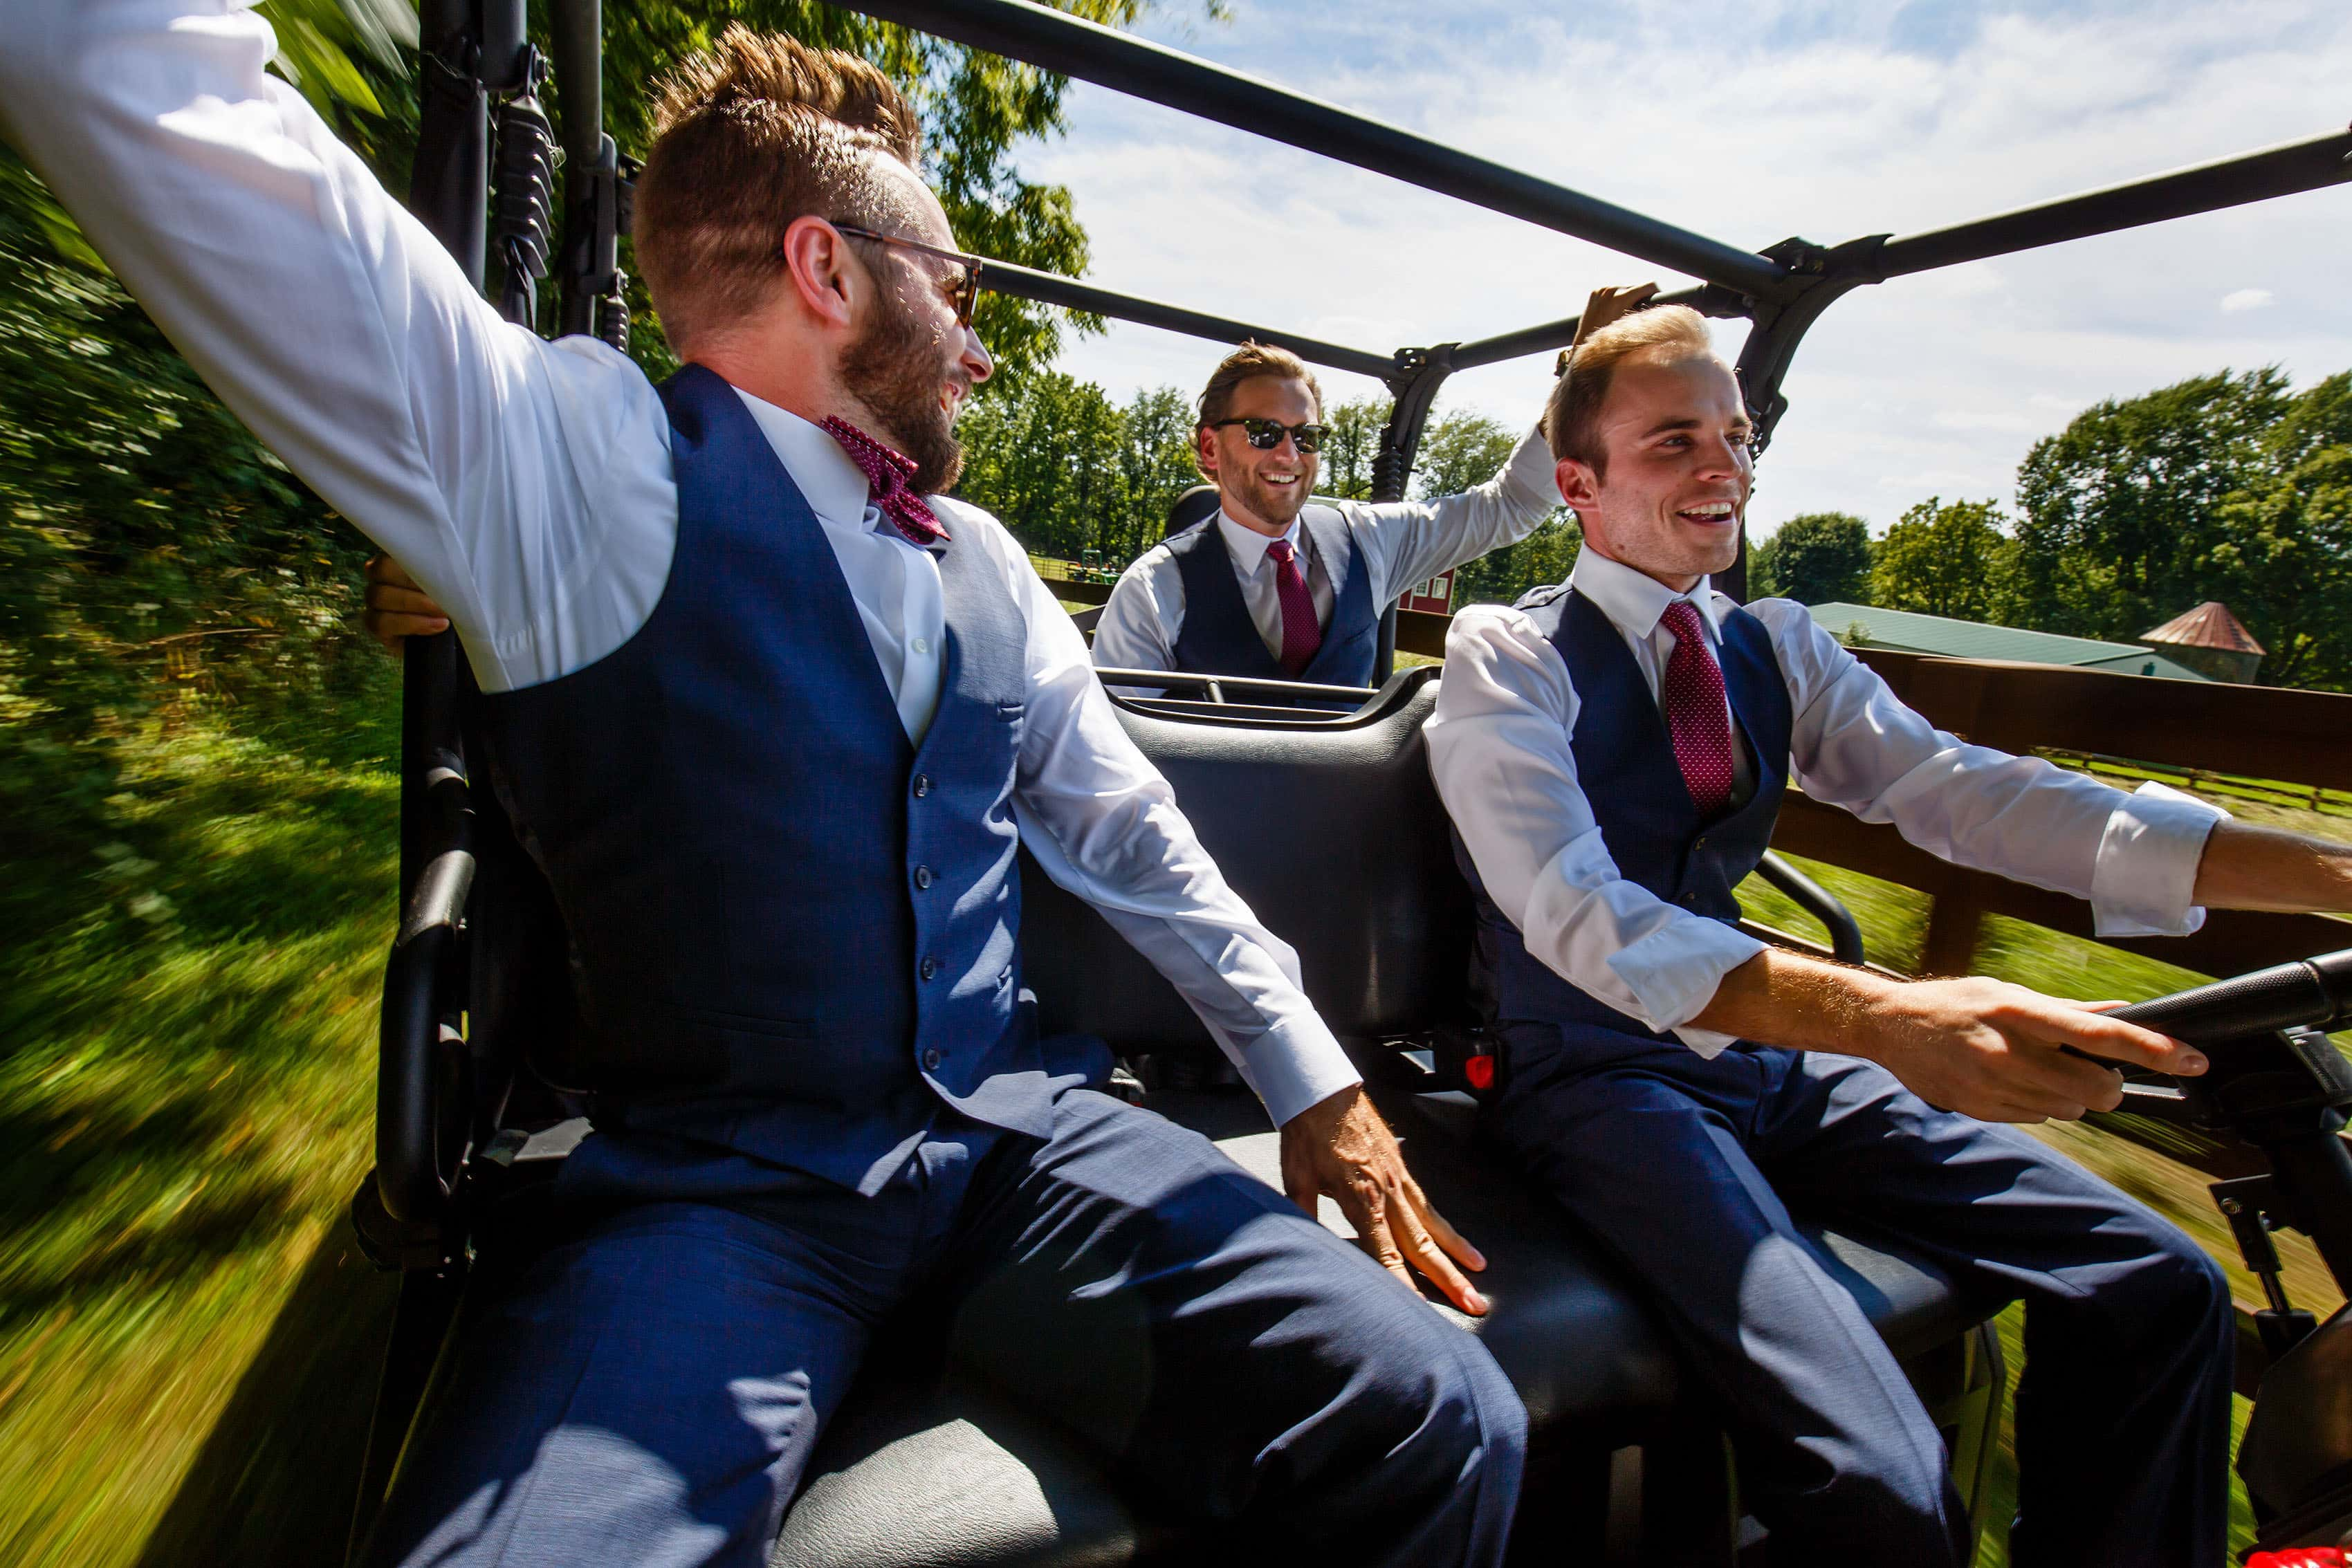 Groomsmen ride in an ATV around a farm near Willow Harbor Vineyards in Three Oaks Michigan